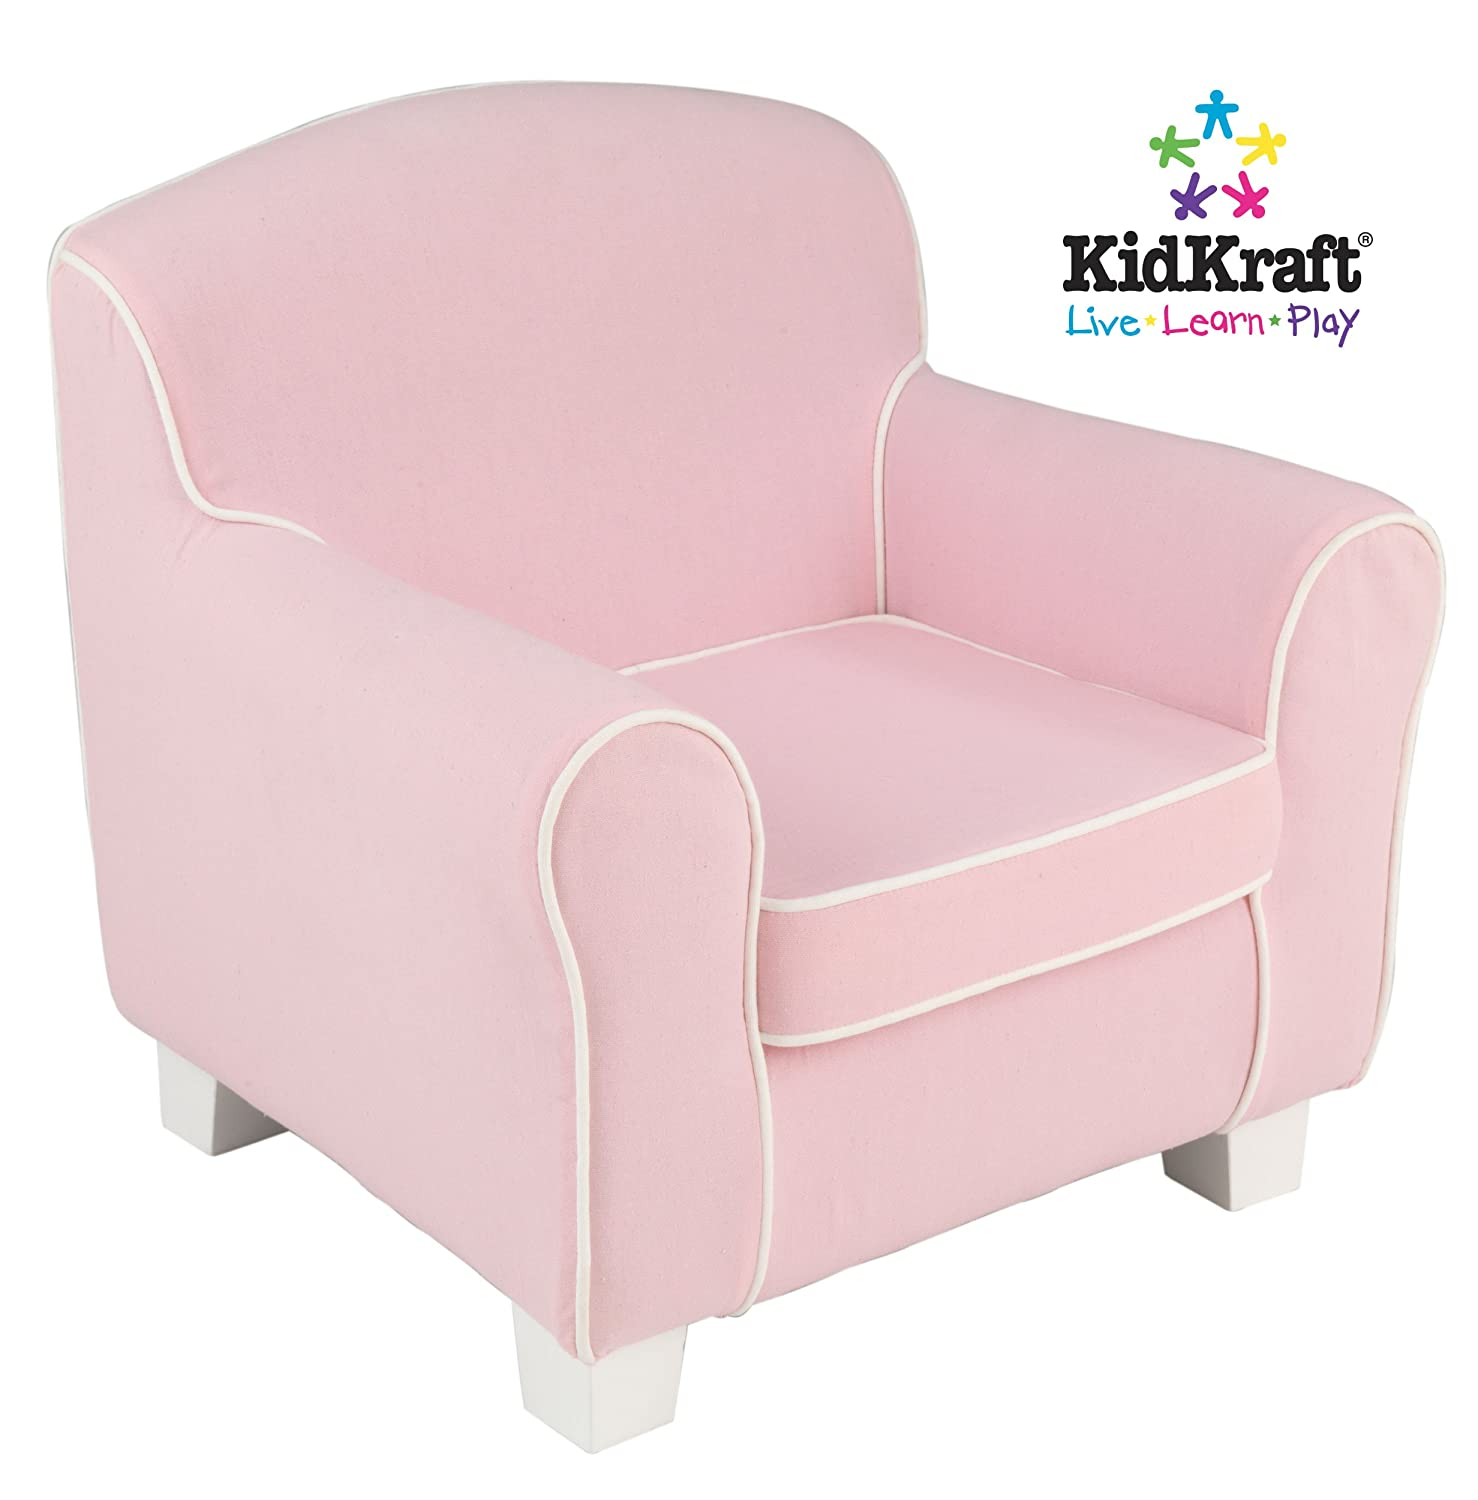 Amazon KidKraft Pink Chair with White Piping Toys & Games